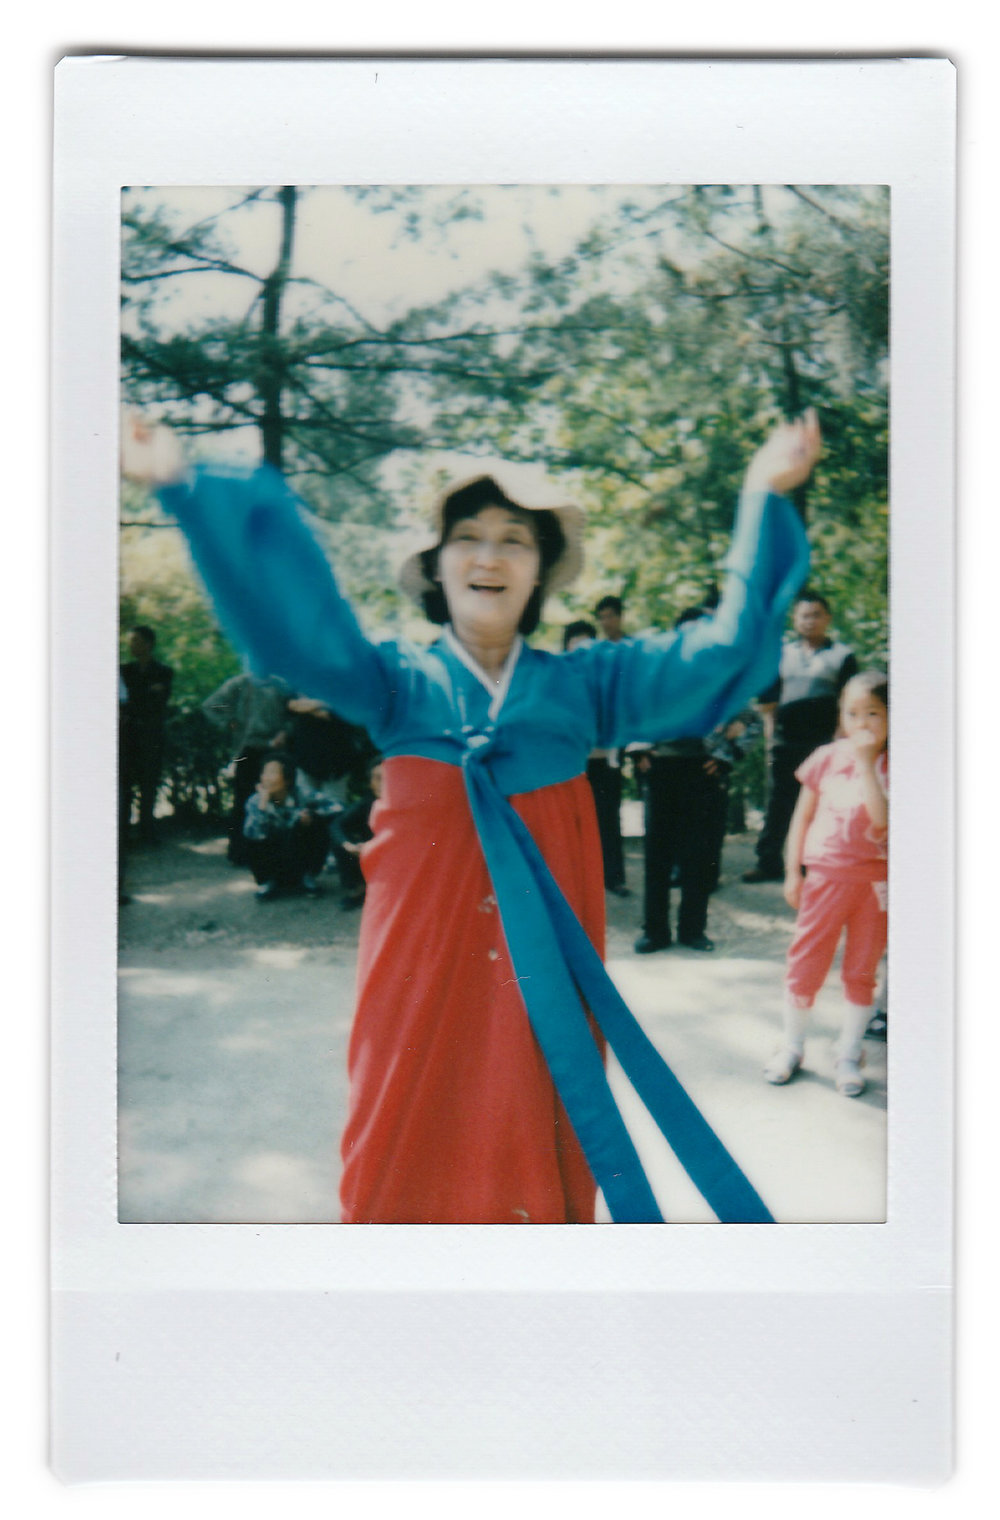 "In this May 10, 2015, photo made with an instant camera, Ri Chun Im, 71, poses for a portrait as she dances with other elderly North Korean men and women at a park in Moran Hill in Pyongyang, North Korea. Ri has been dancing everyday for the past 4-5 years. She loves dancing because it keeps her young and healthy. When asked what's important to them, North Koreans might talk about working hard, or doing well at sports, or having a big family, but leader Kim Jong Un is never far from the conversation. Her motto: ""To live a healthy life devoted to supporting the country's ruling party."" (AP Photo/Wong Maye-E)"